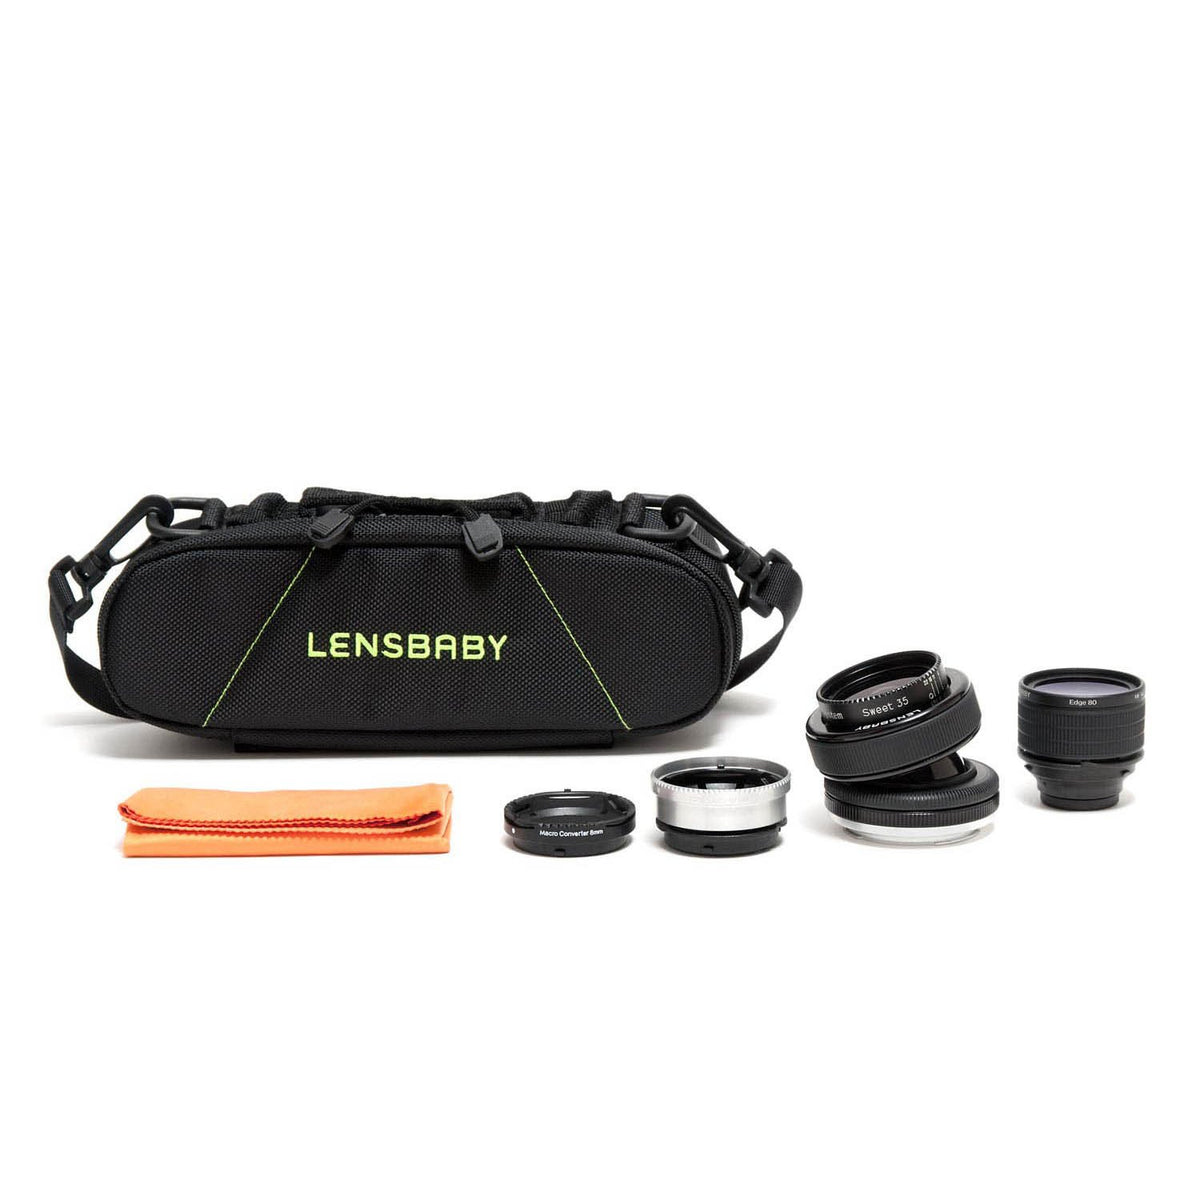 (Refurbished) Pro Effects Kit - Lensbaby Creative Effect Camera Lenses